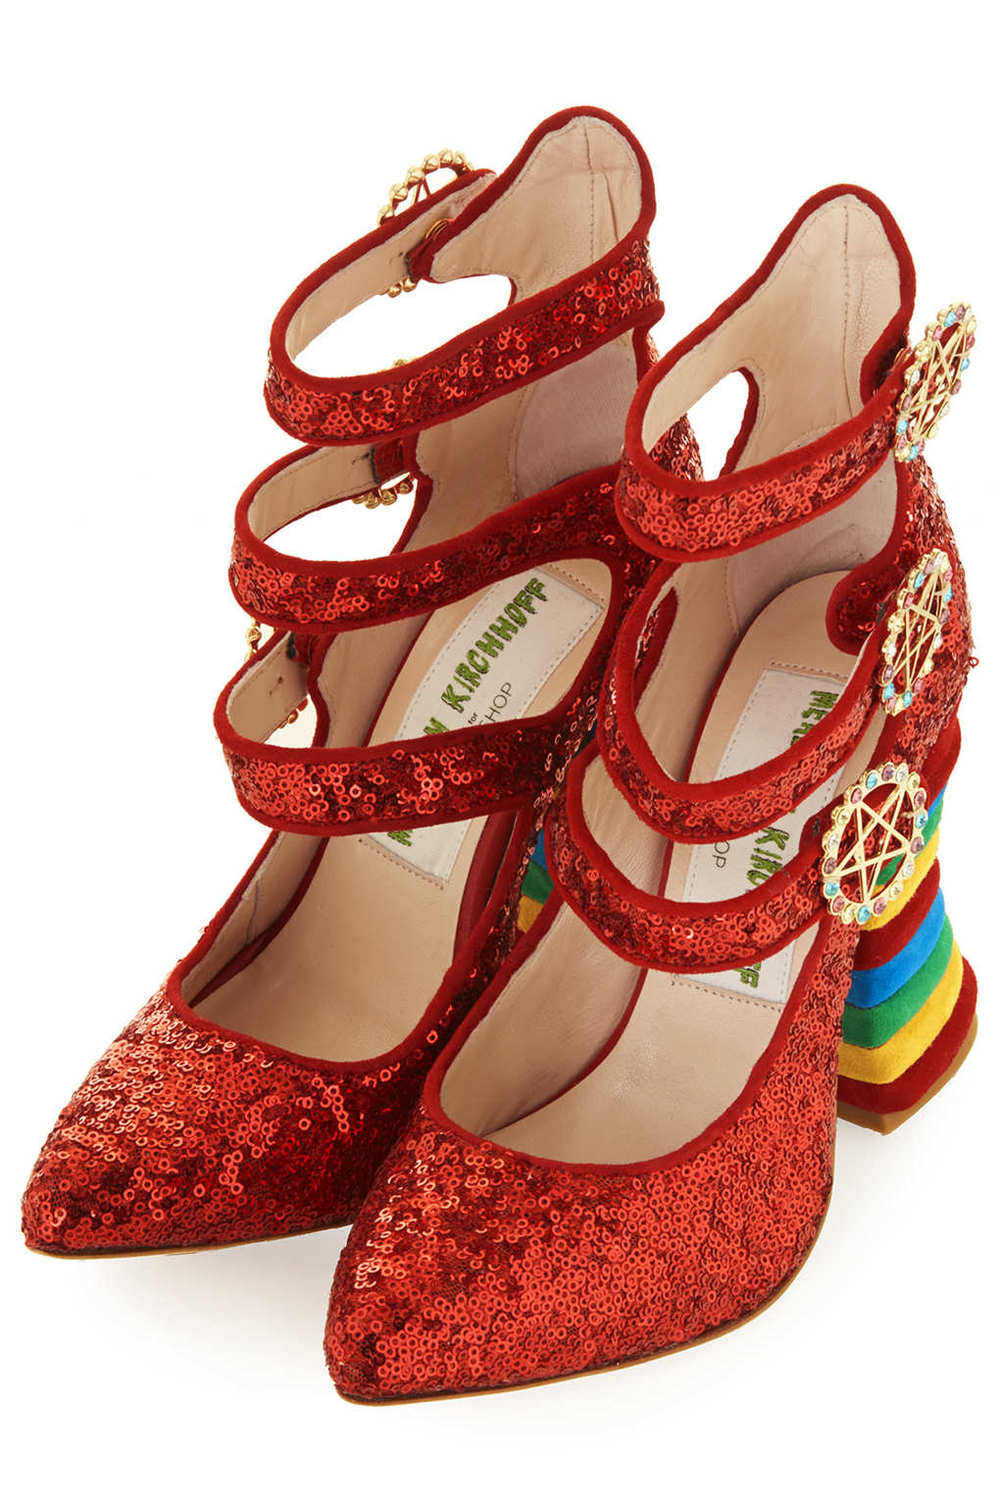 RED SEQUIN RAINBOW HEELS BY MEADHAM KIRCHHOFF 3.jpg